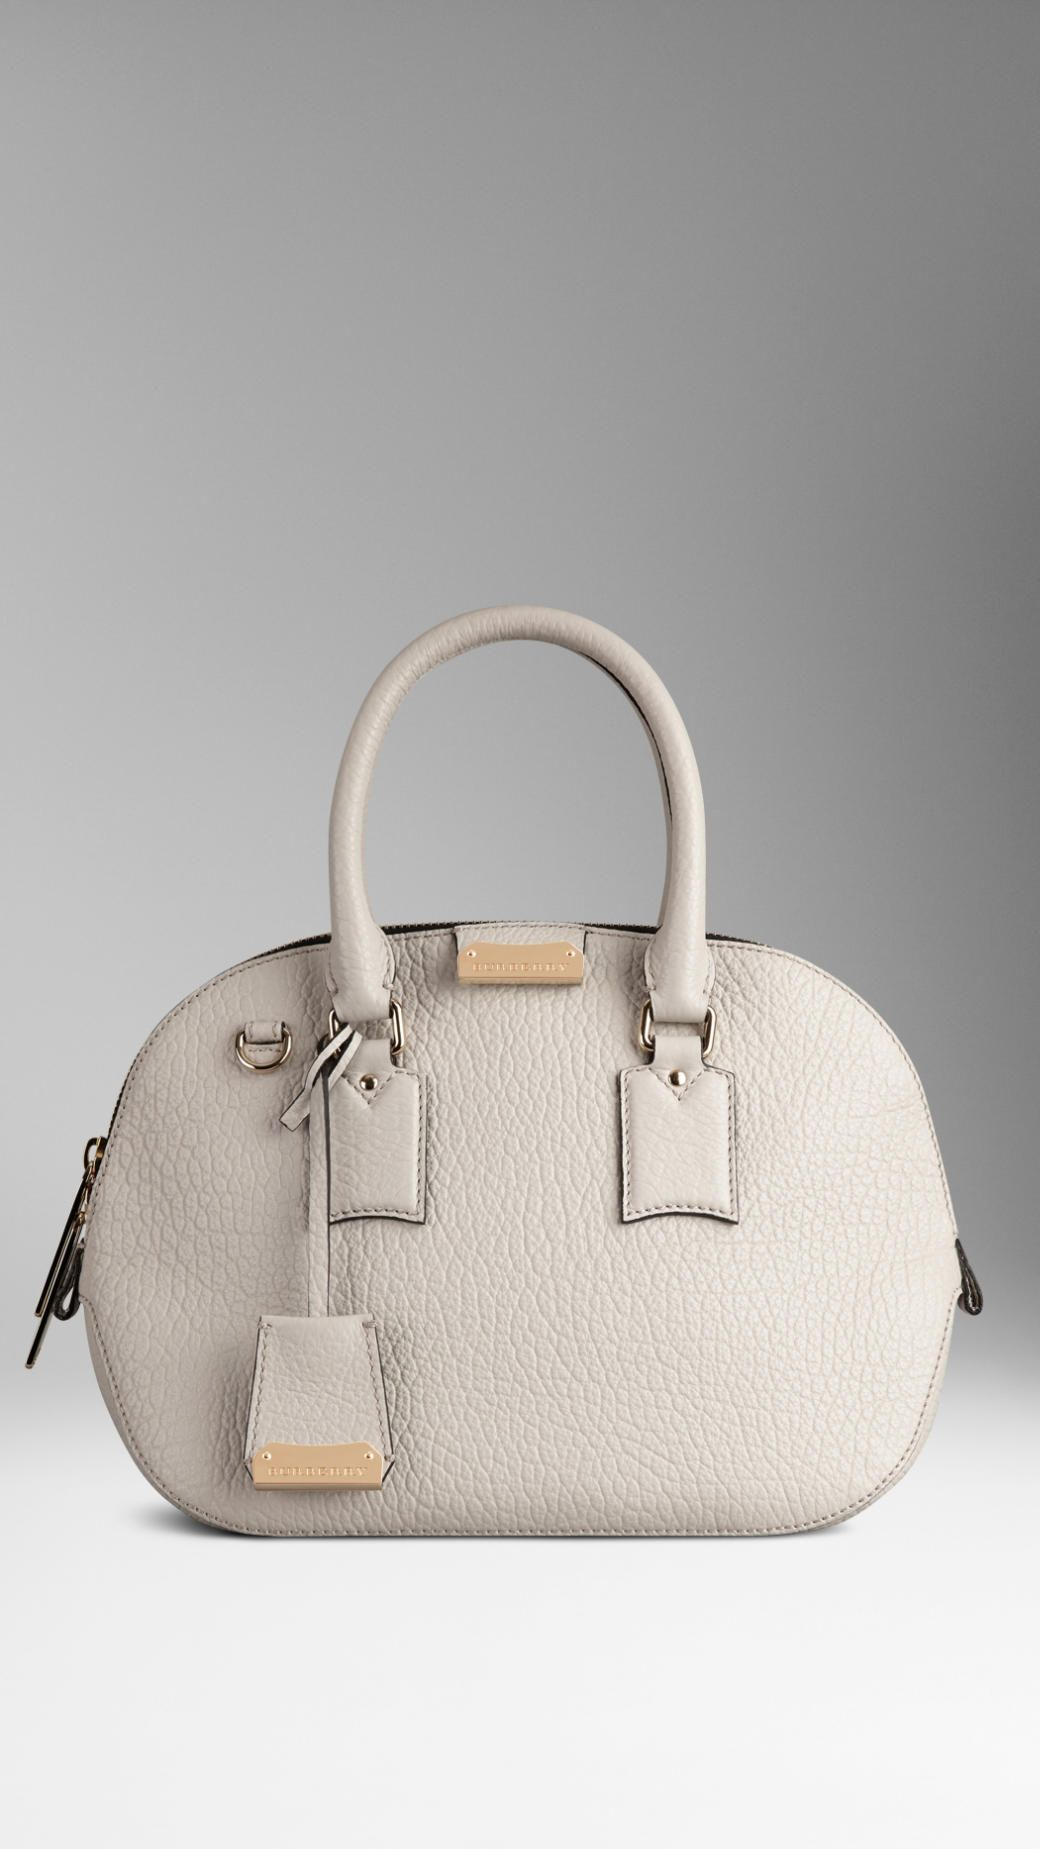 682850bb6014 The Small Orchard in Signature Grain Leather